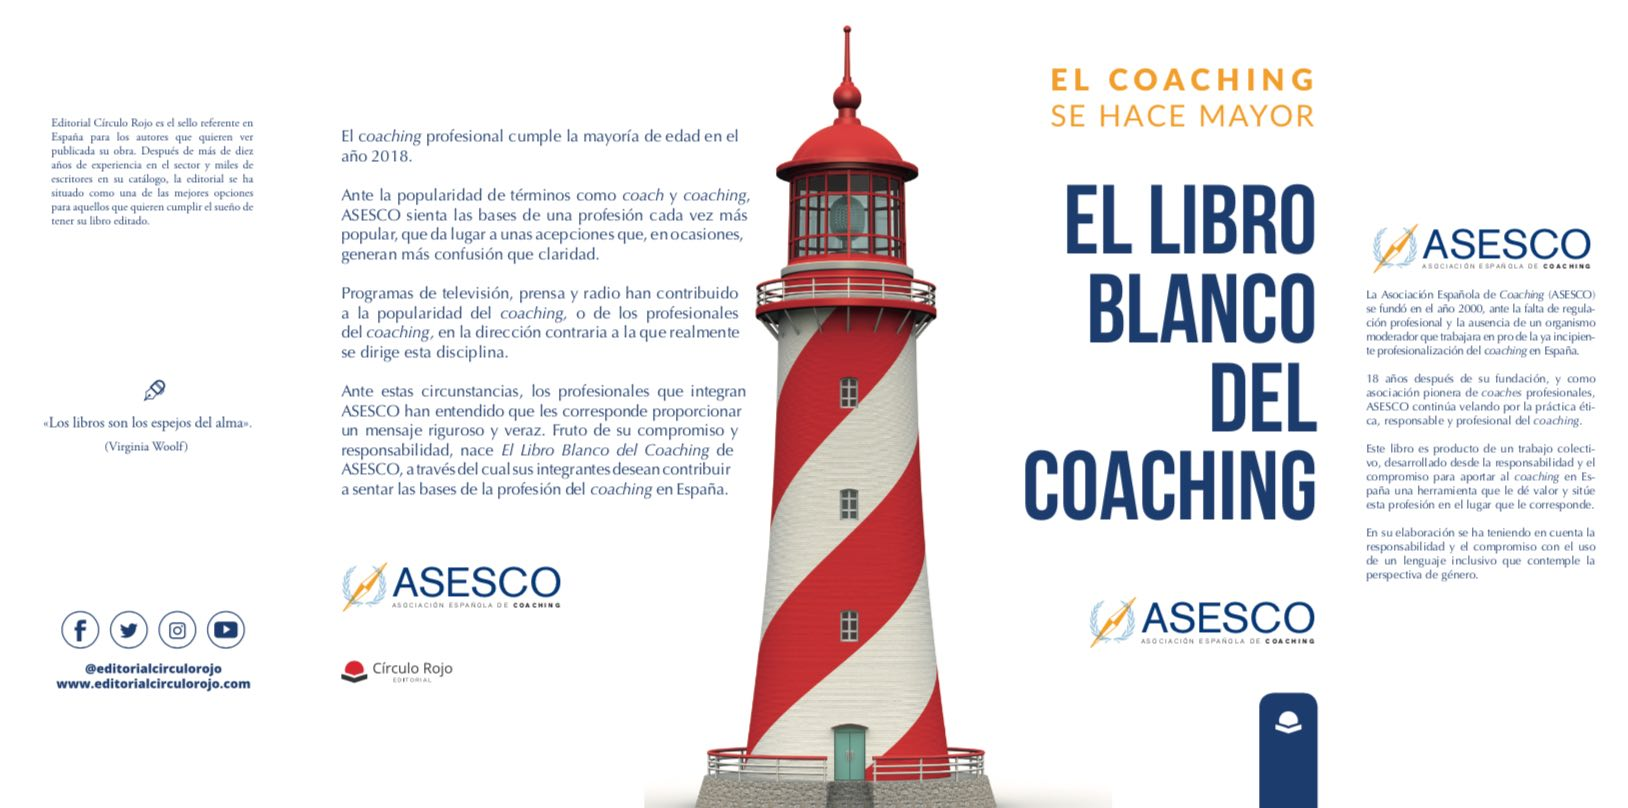 Libro blanco del coaching